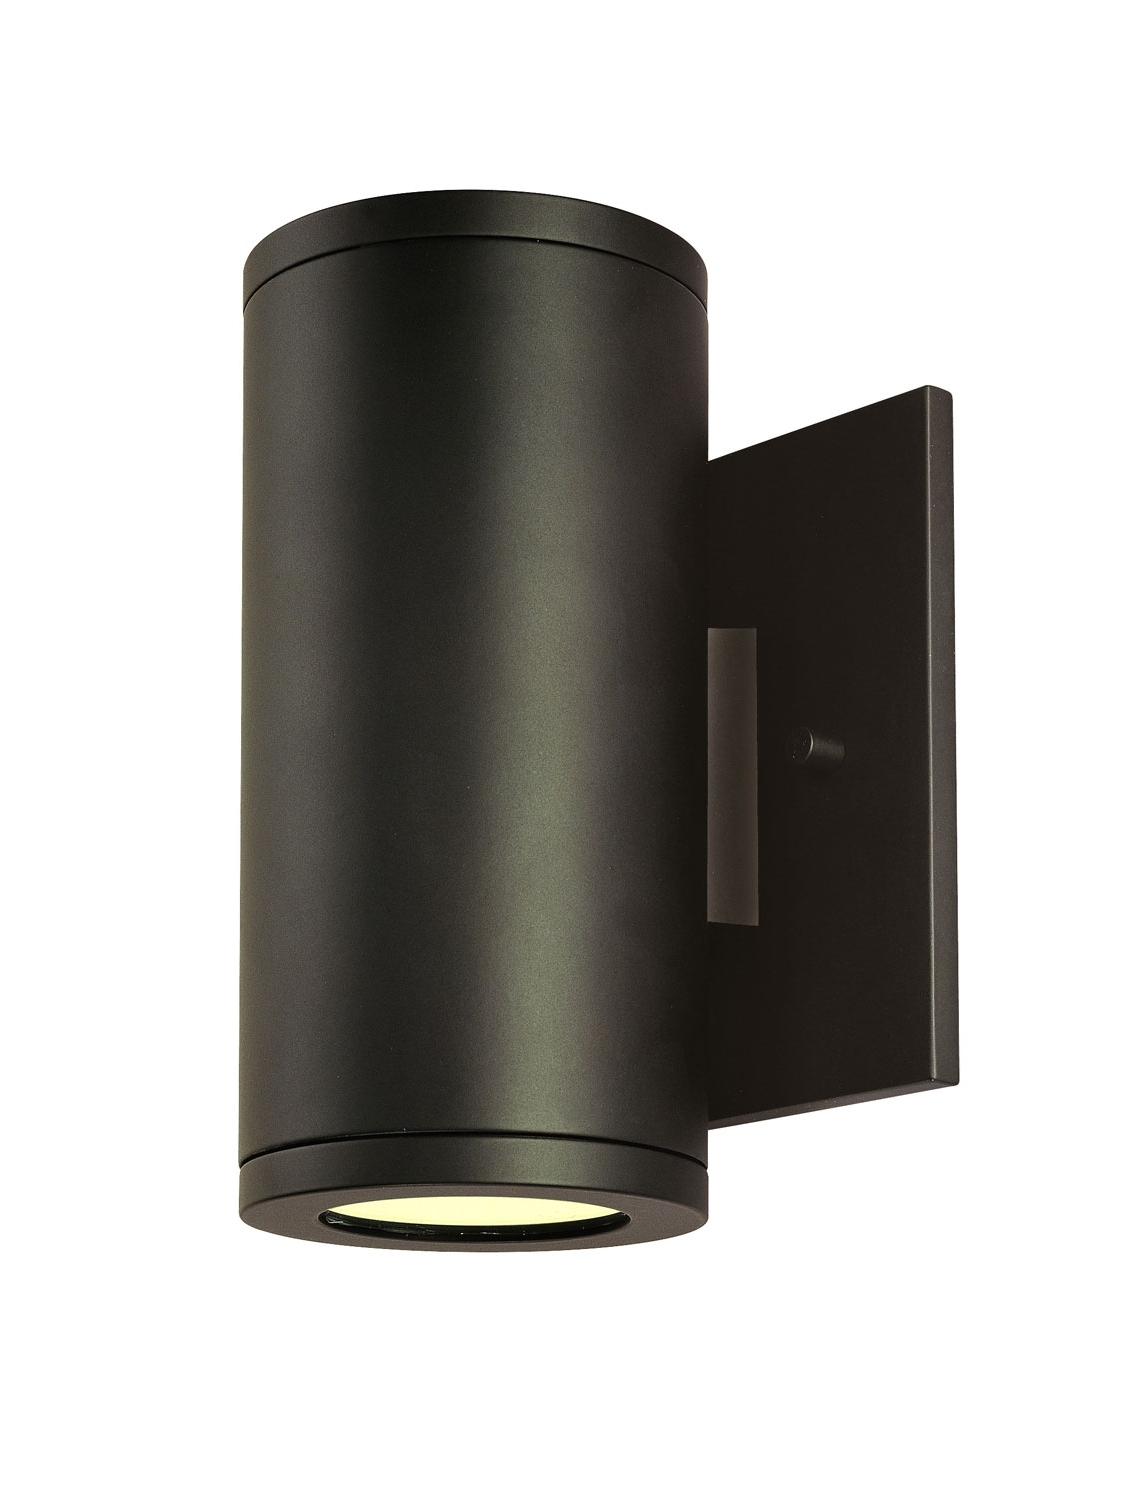 Outdoor Wall Mount Led Light Fixtures Pertaining To 2019 Light : Indoor Wall Mounted Light Fixtures Modern Forms Outdoor Led (View 10 of 20)